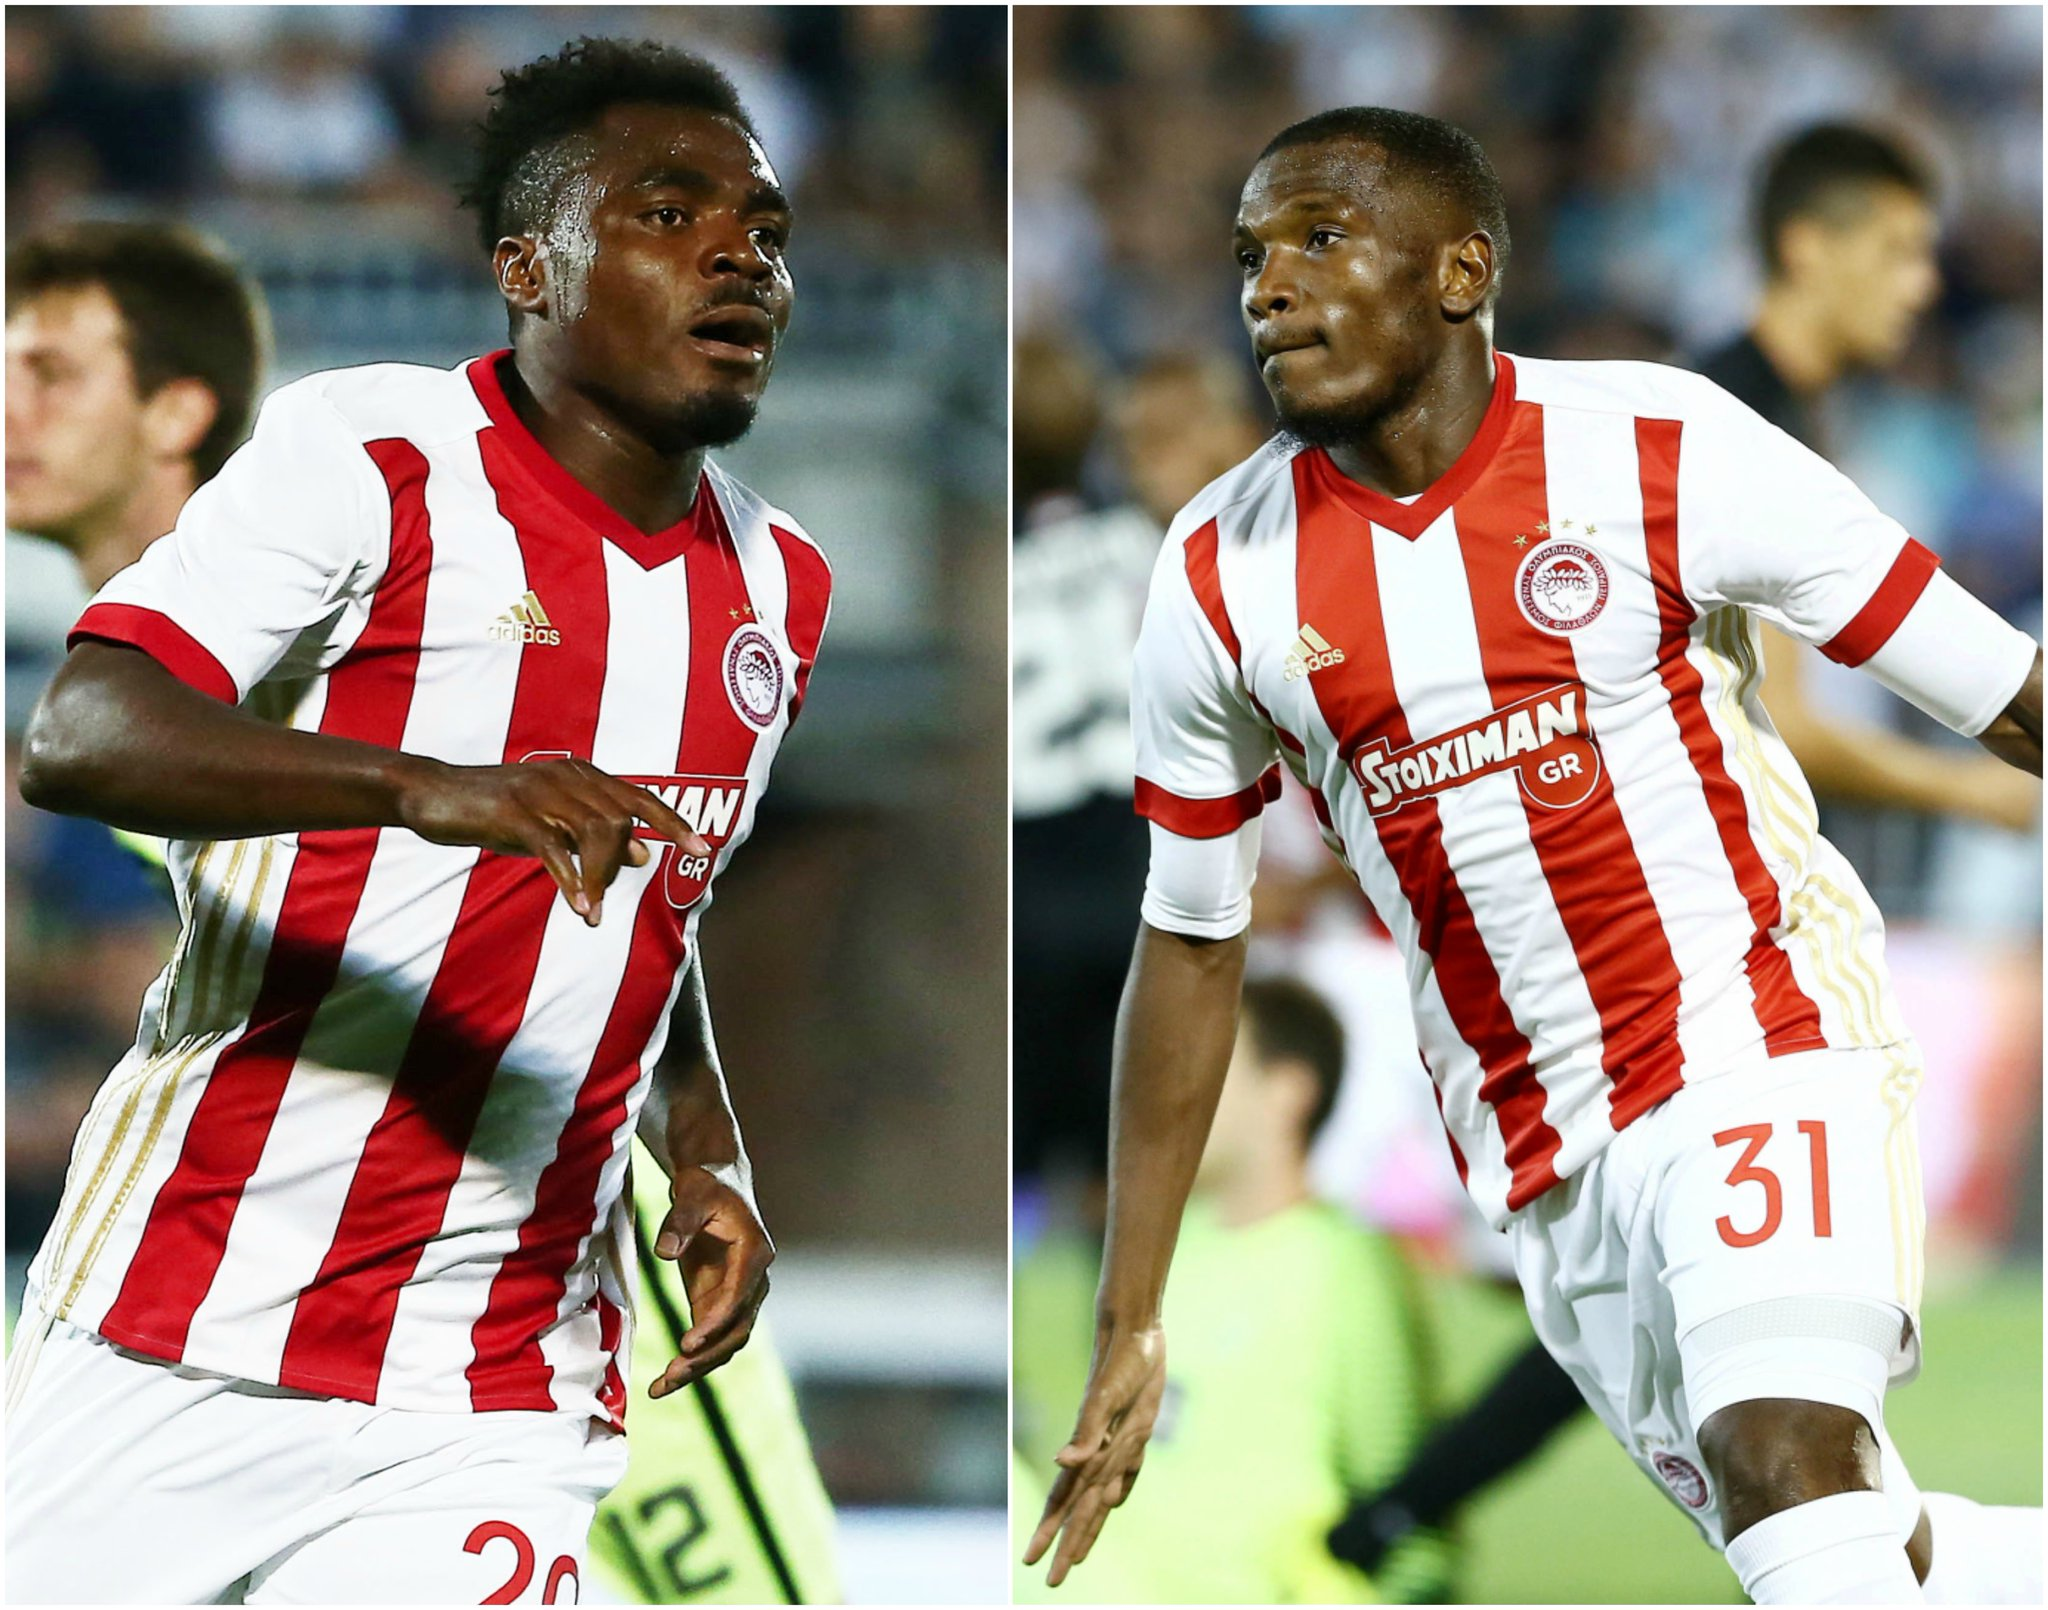 UCL Qualifiers Emenike Scores Samuel Benched As Olympiacos CSKA